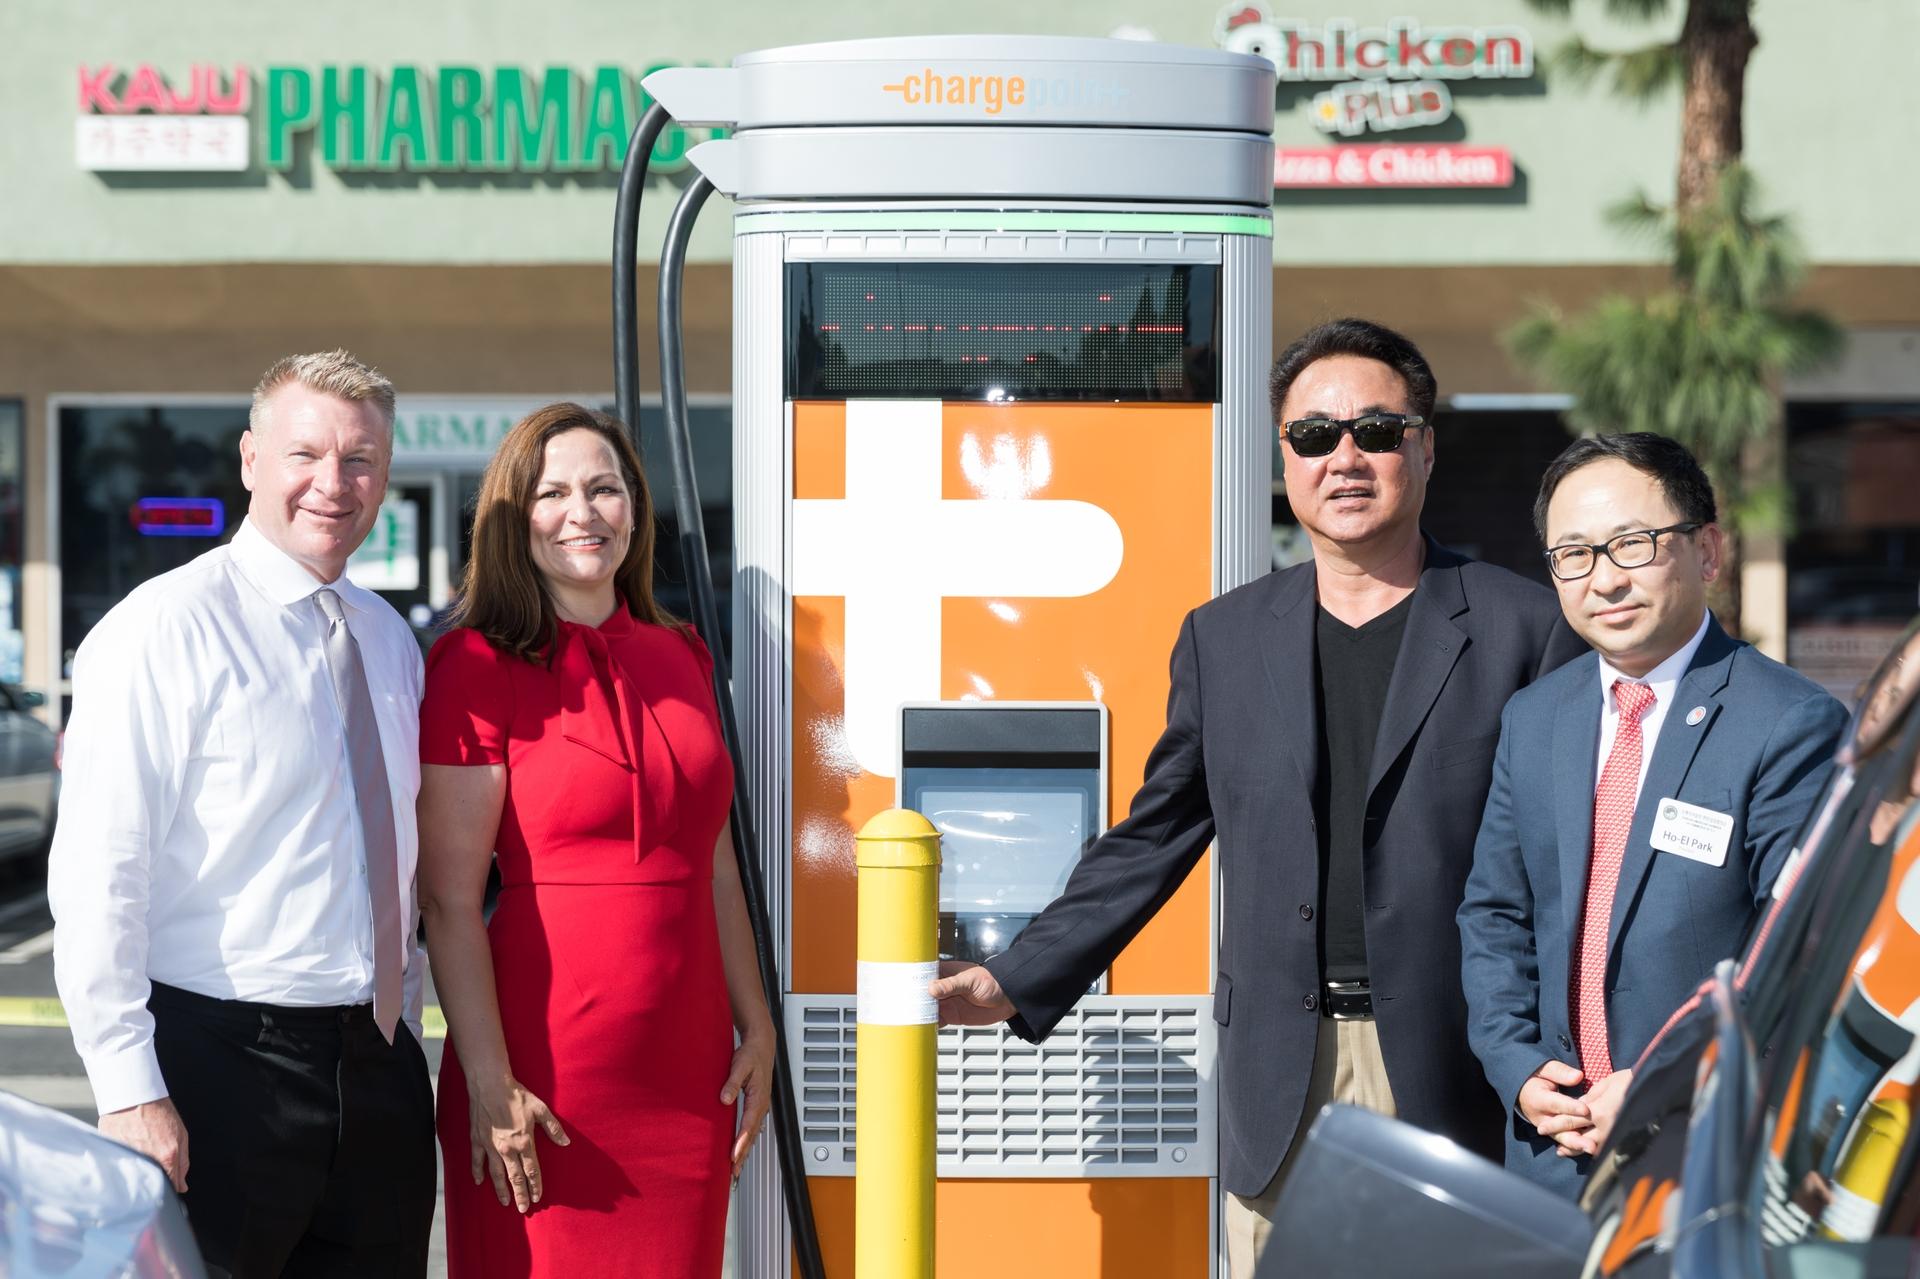 Katie Sloan, SCE director of eMobility and building electrification, is joined by Garden Grove Mayor Steven R. Jones, CNT Properties President Charles Lee and Korean American Chamber of Commerce of Orange County President Ho-El Park.